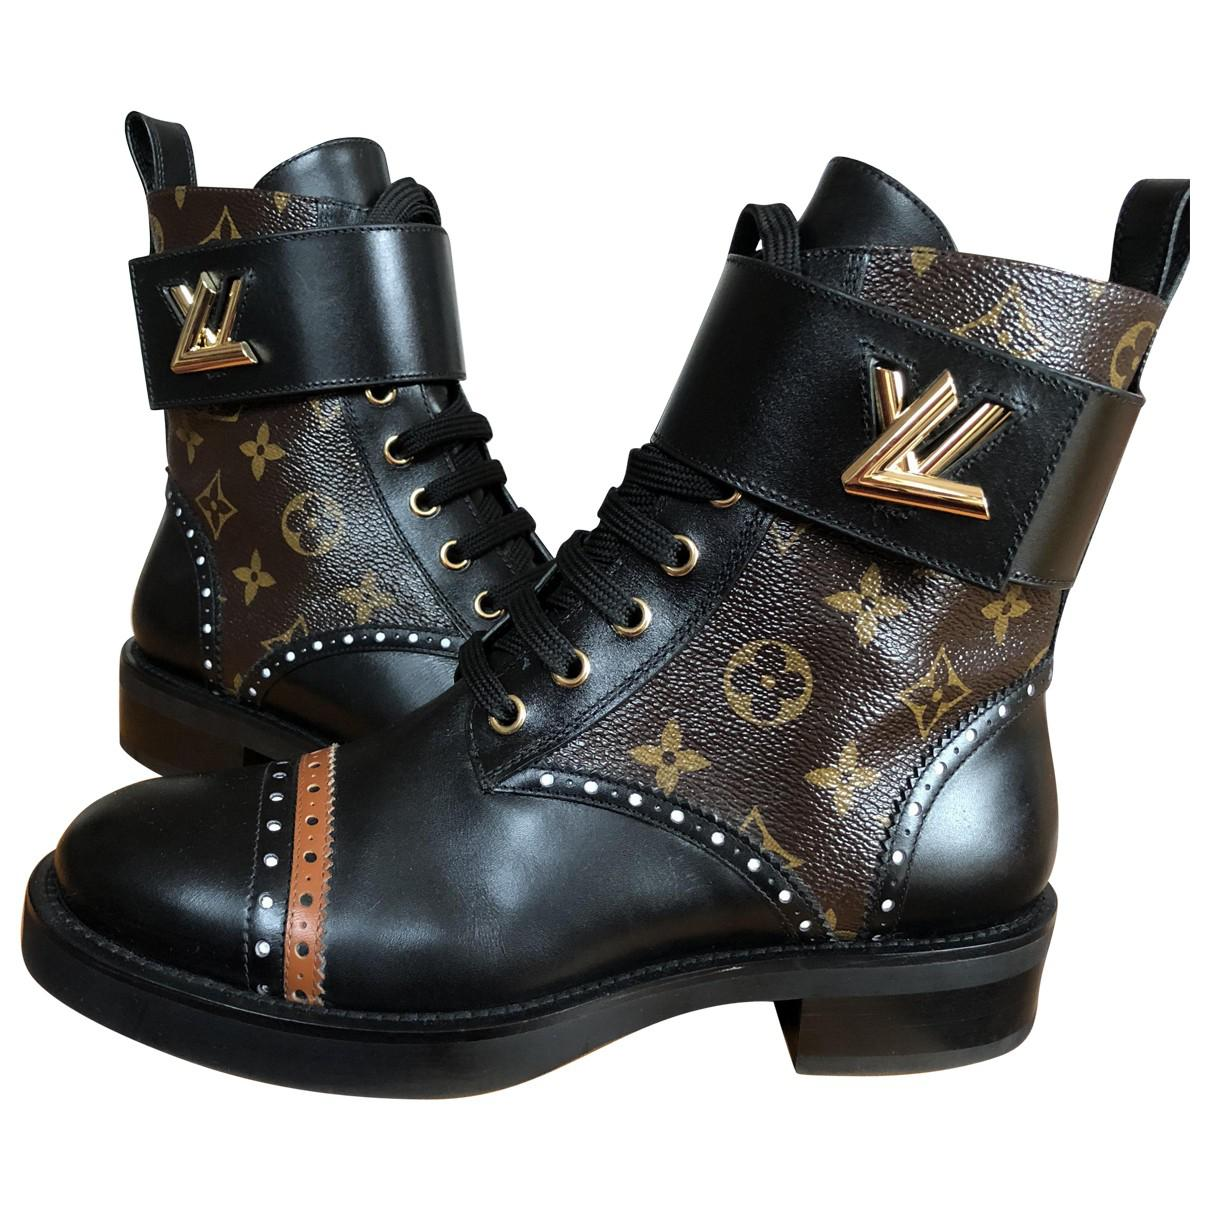 f259de10630b Lyst - Louis Vuitton Pre-owned Leather Lace Up Boots in Black